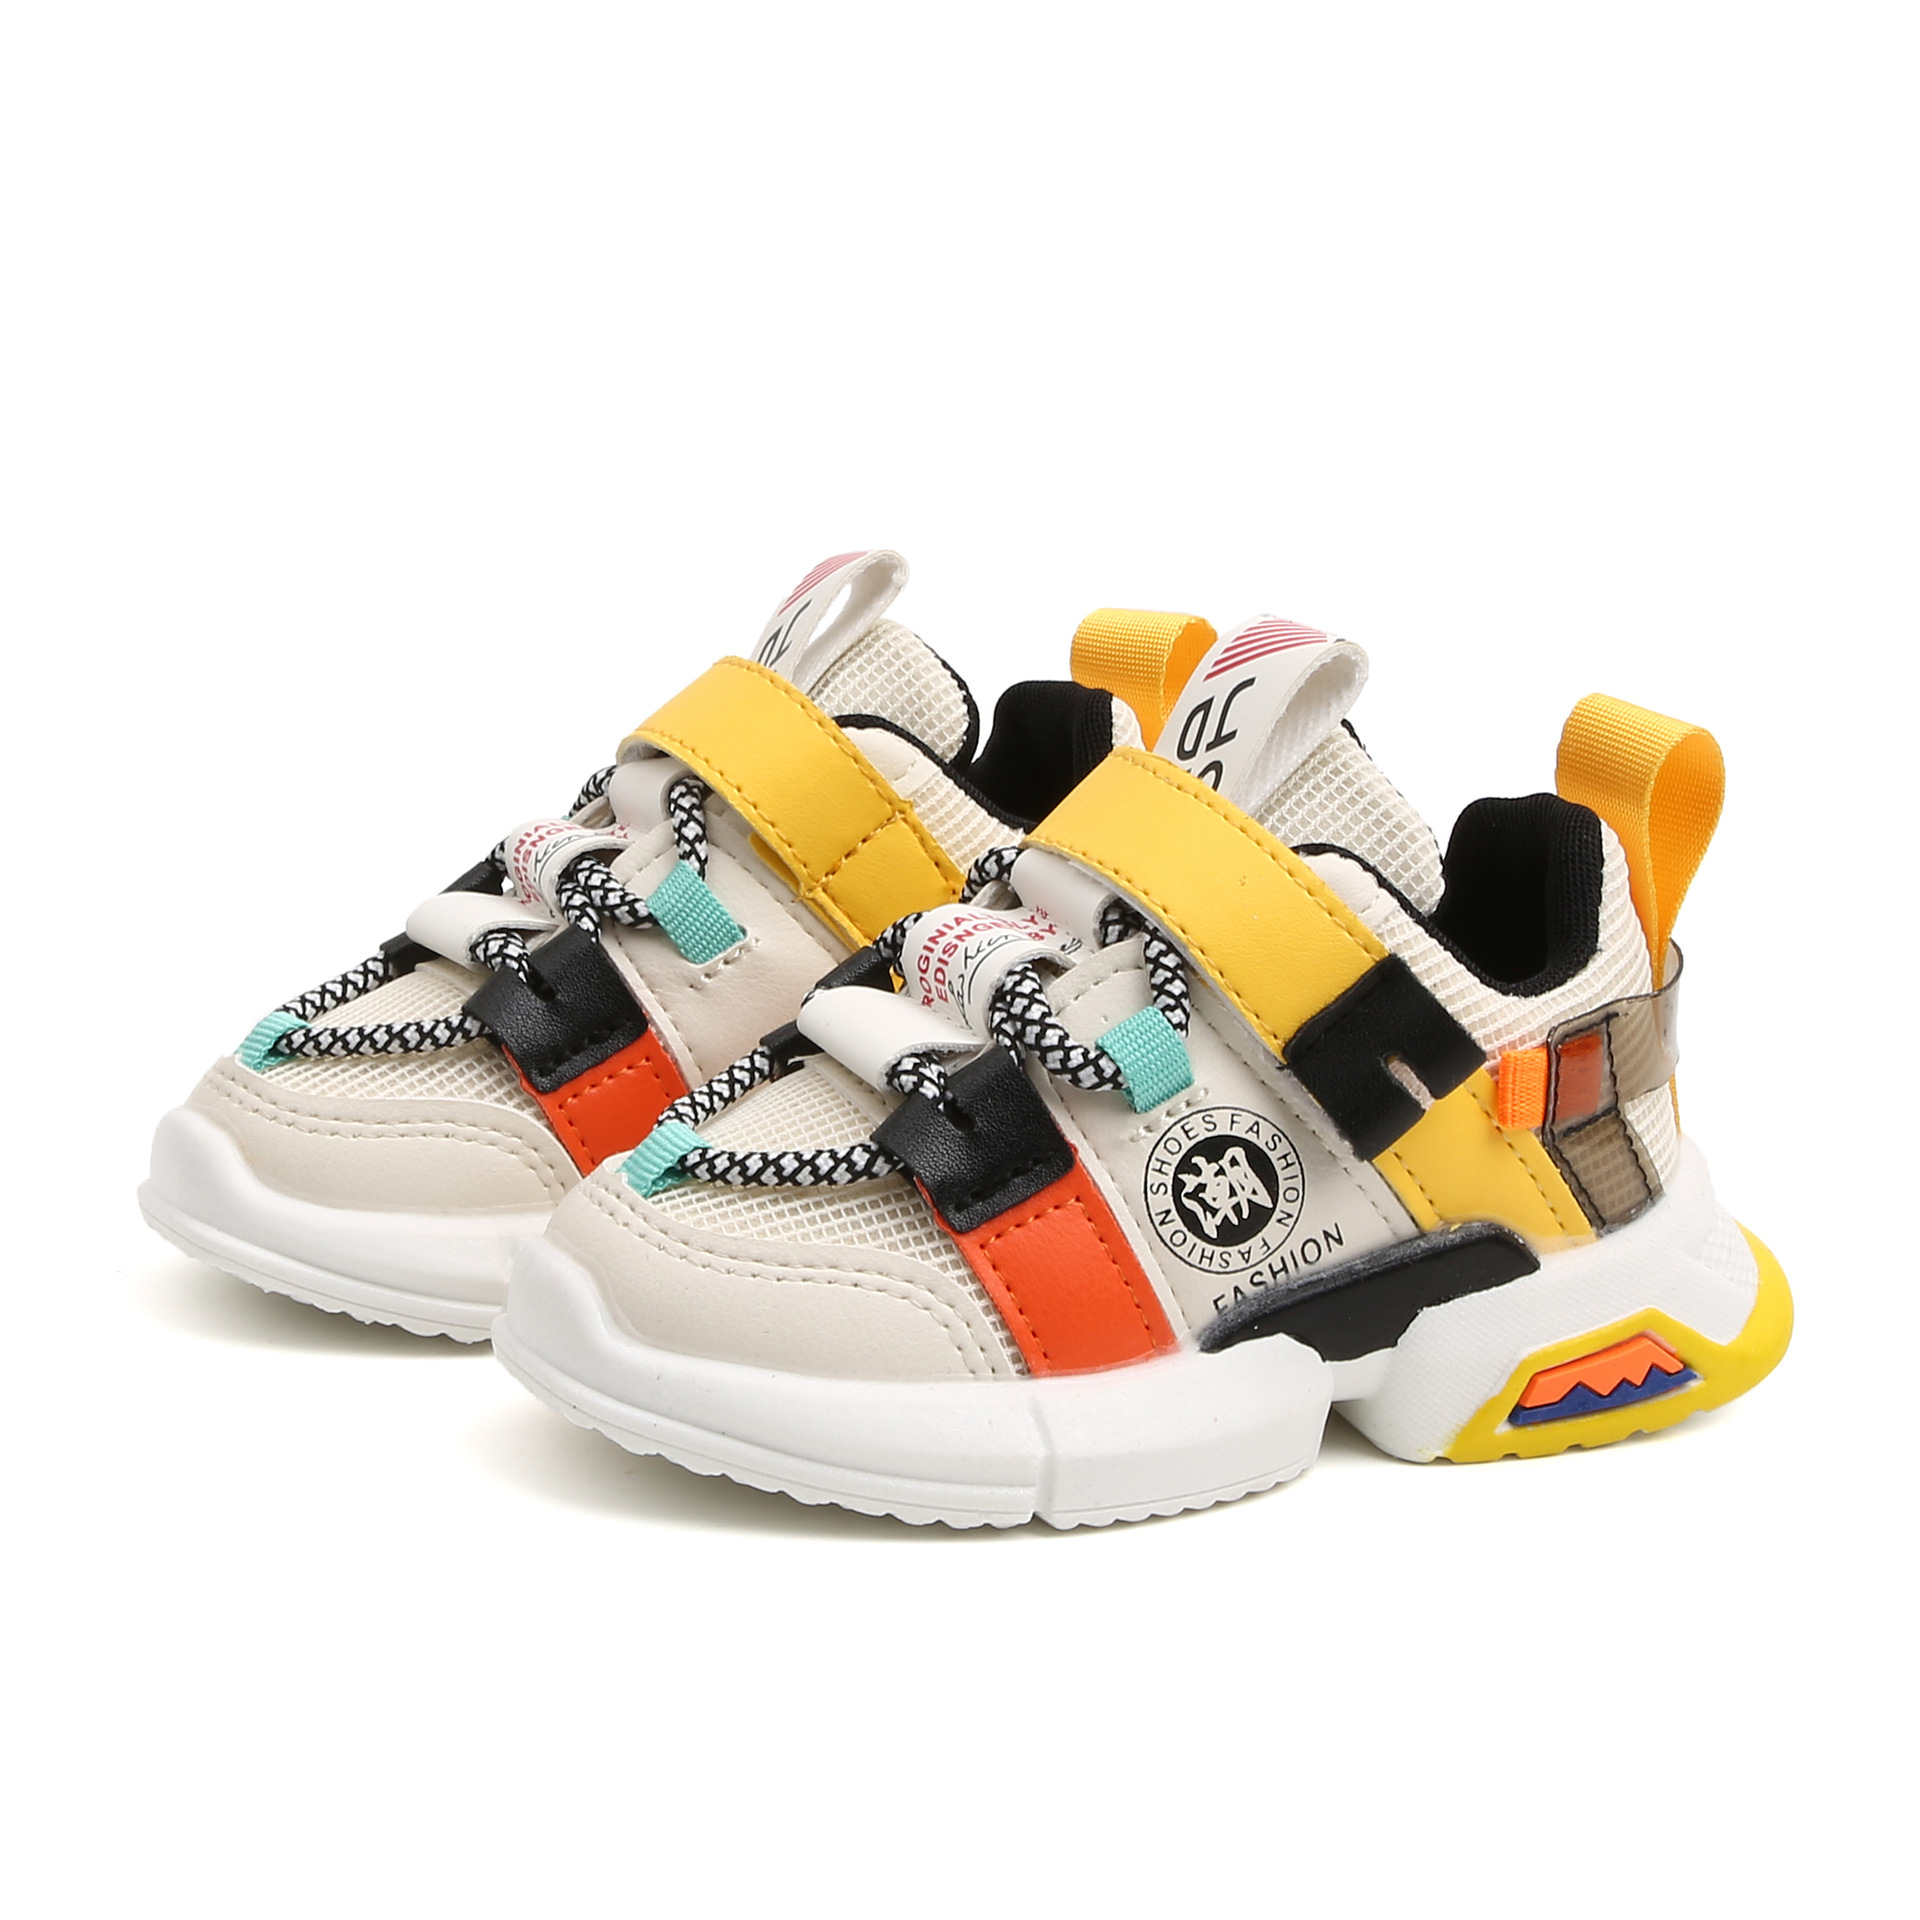 COMFY KIDS Fashion New Girls Sneakers For Boys Sports Shoes Soft Bottom Size 21--30 Boys Girls Sneakers For Children's Sports